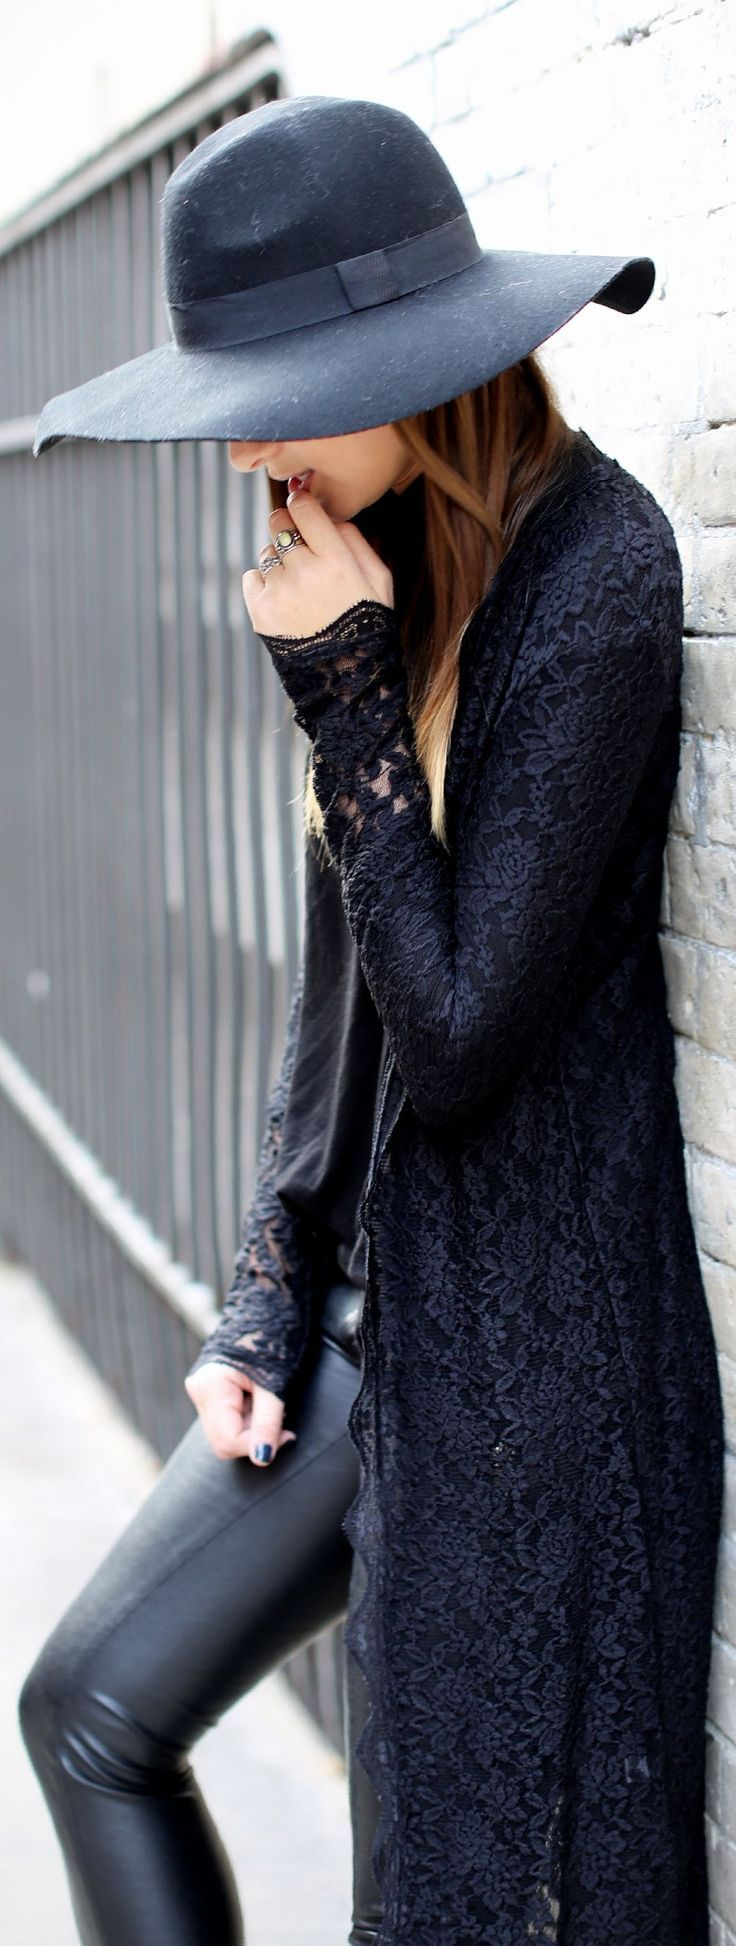 Leather & Lace - STREET STYLE